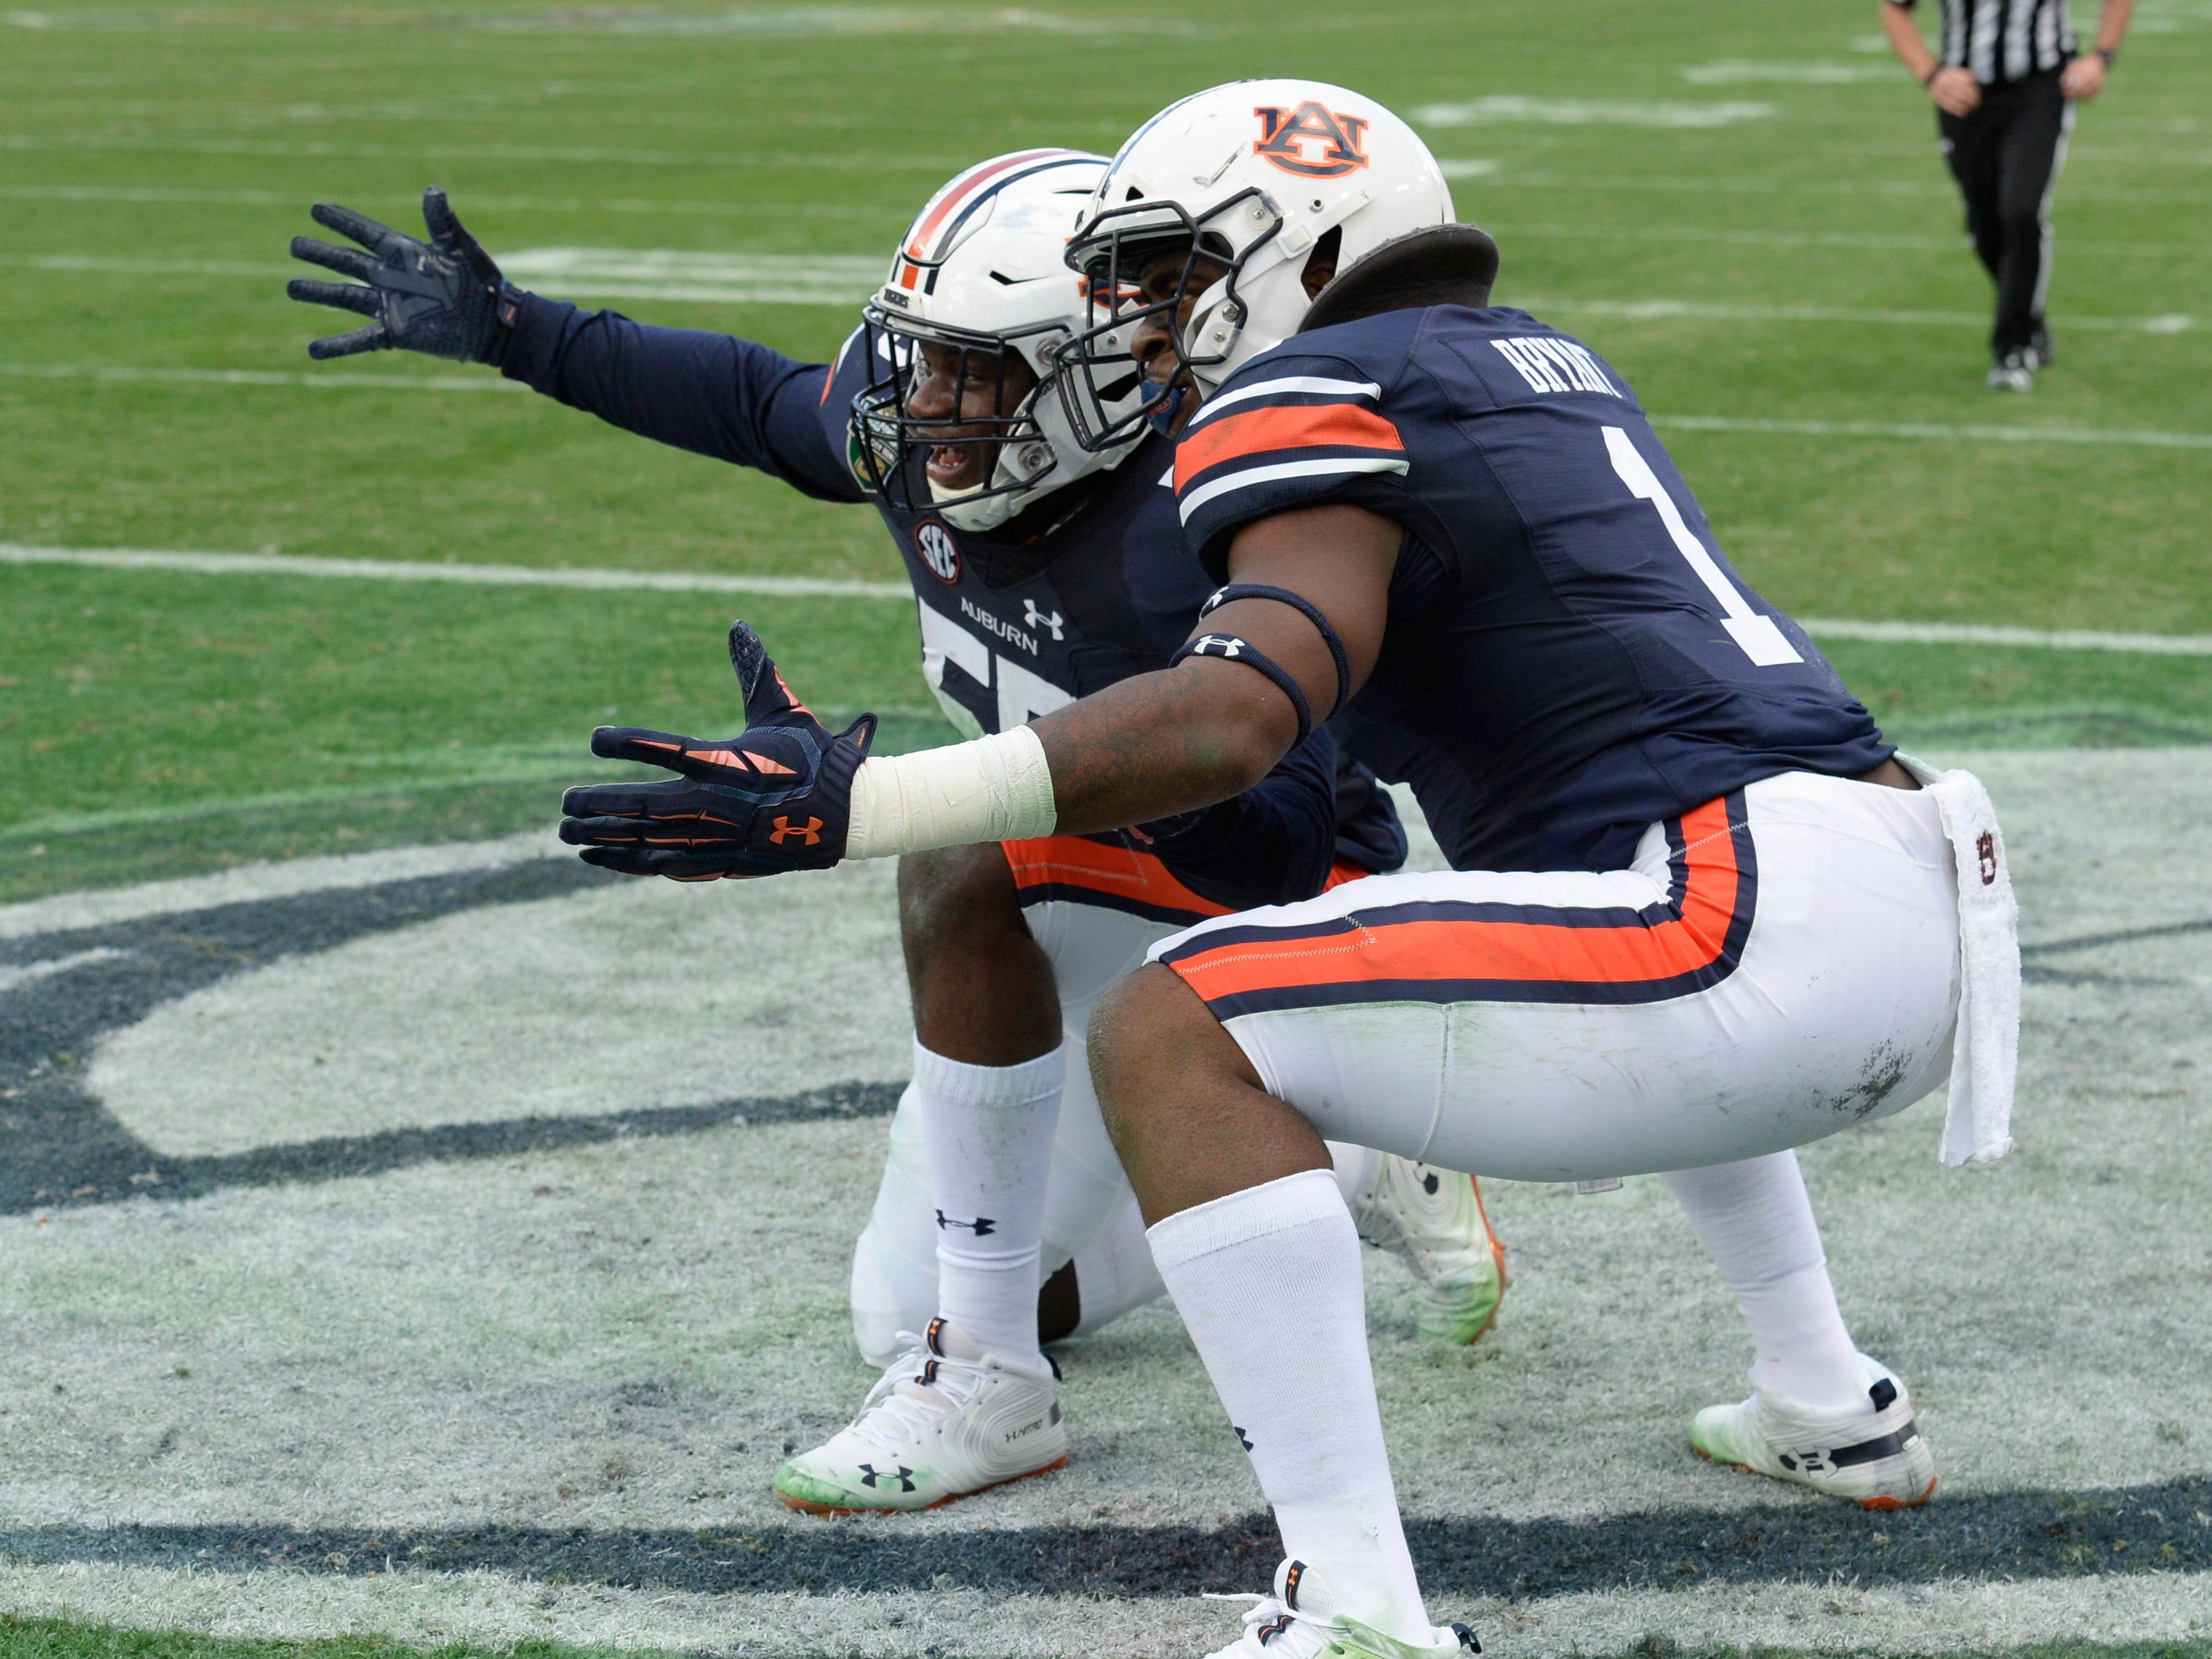 Auburn linebacker Big Kat Bryant (1) celebrates with linebacker T.D. Moultry (55) in the second quarter of the Music City Bowl NCAA college football game Friday, Dec. 28, 2018, at Nissan Stadium in Nashville, Tenn.